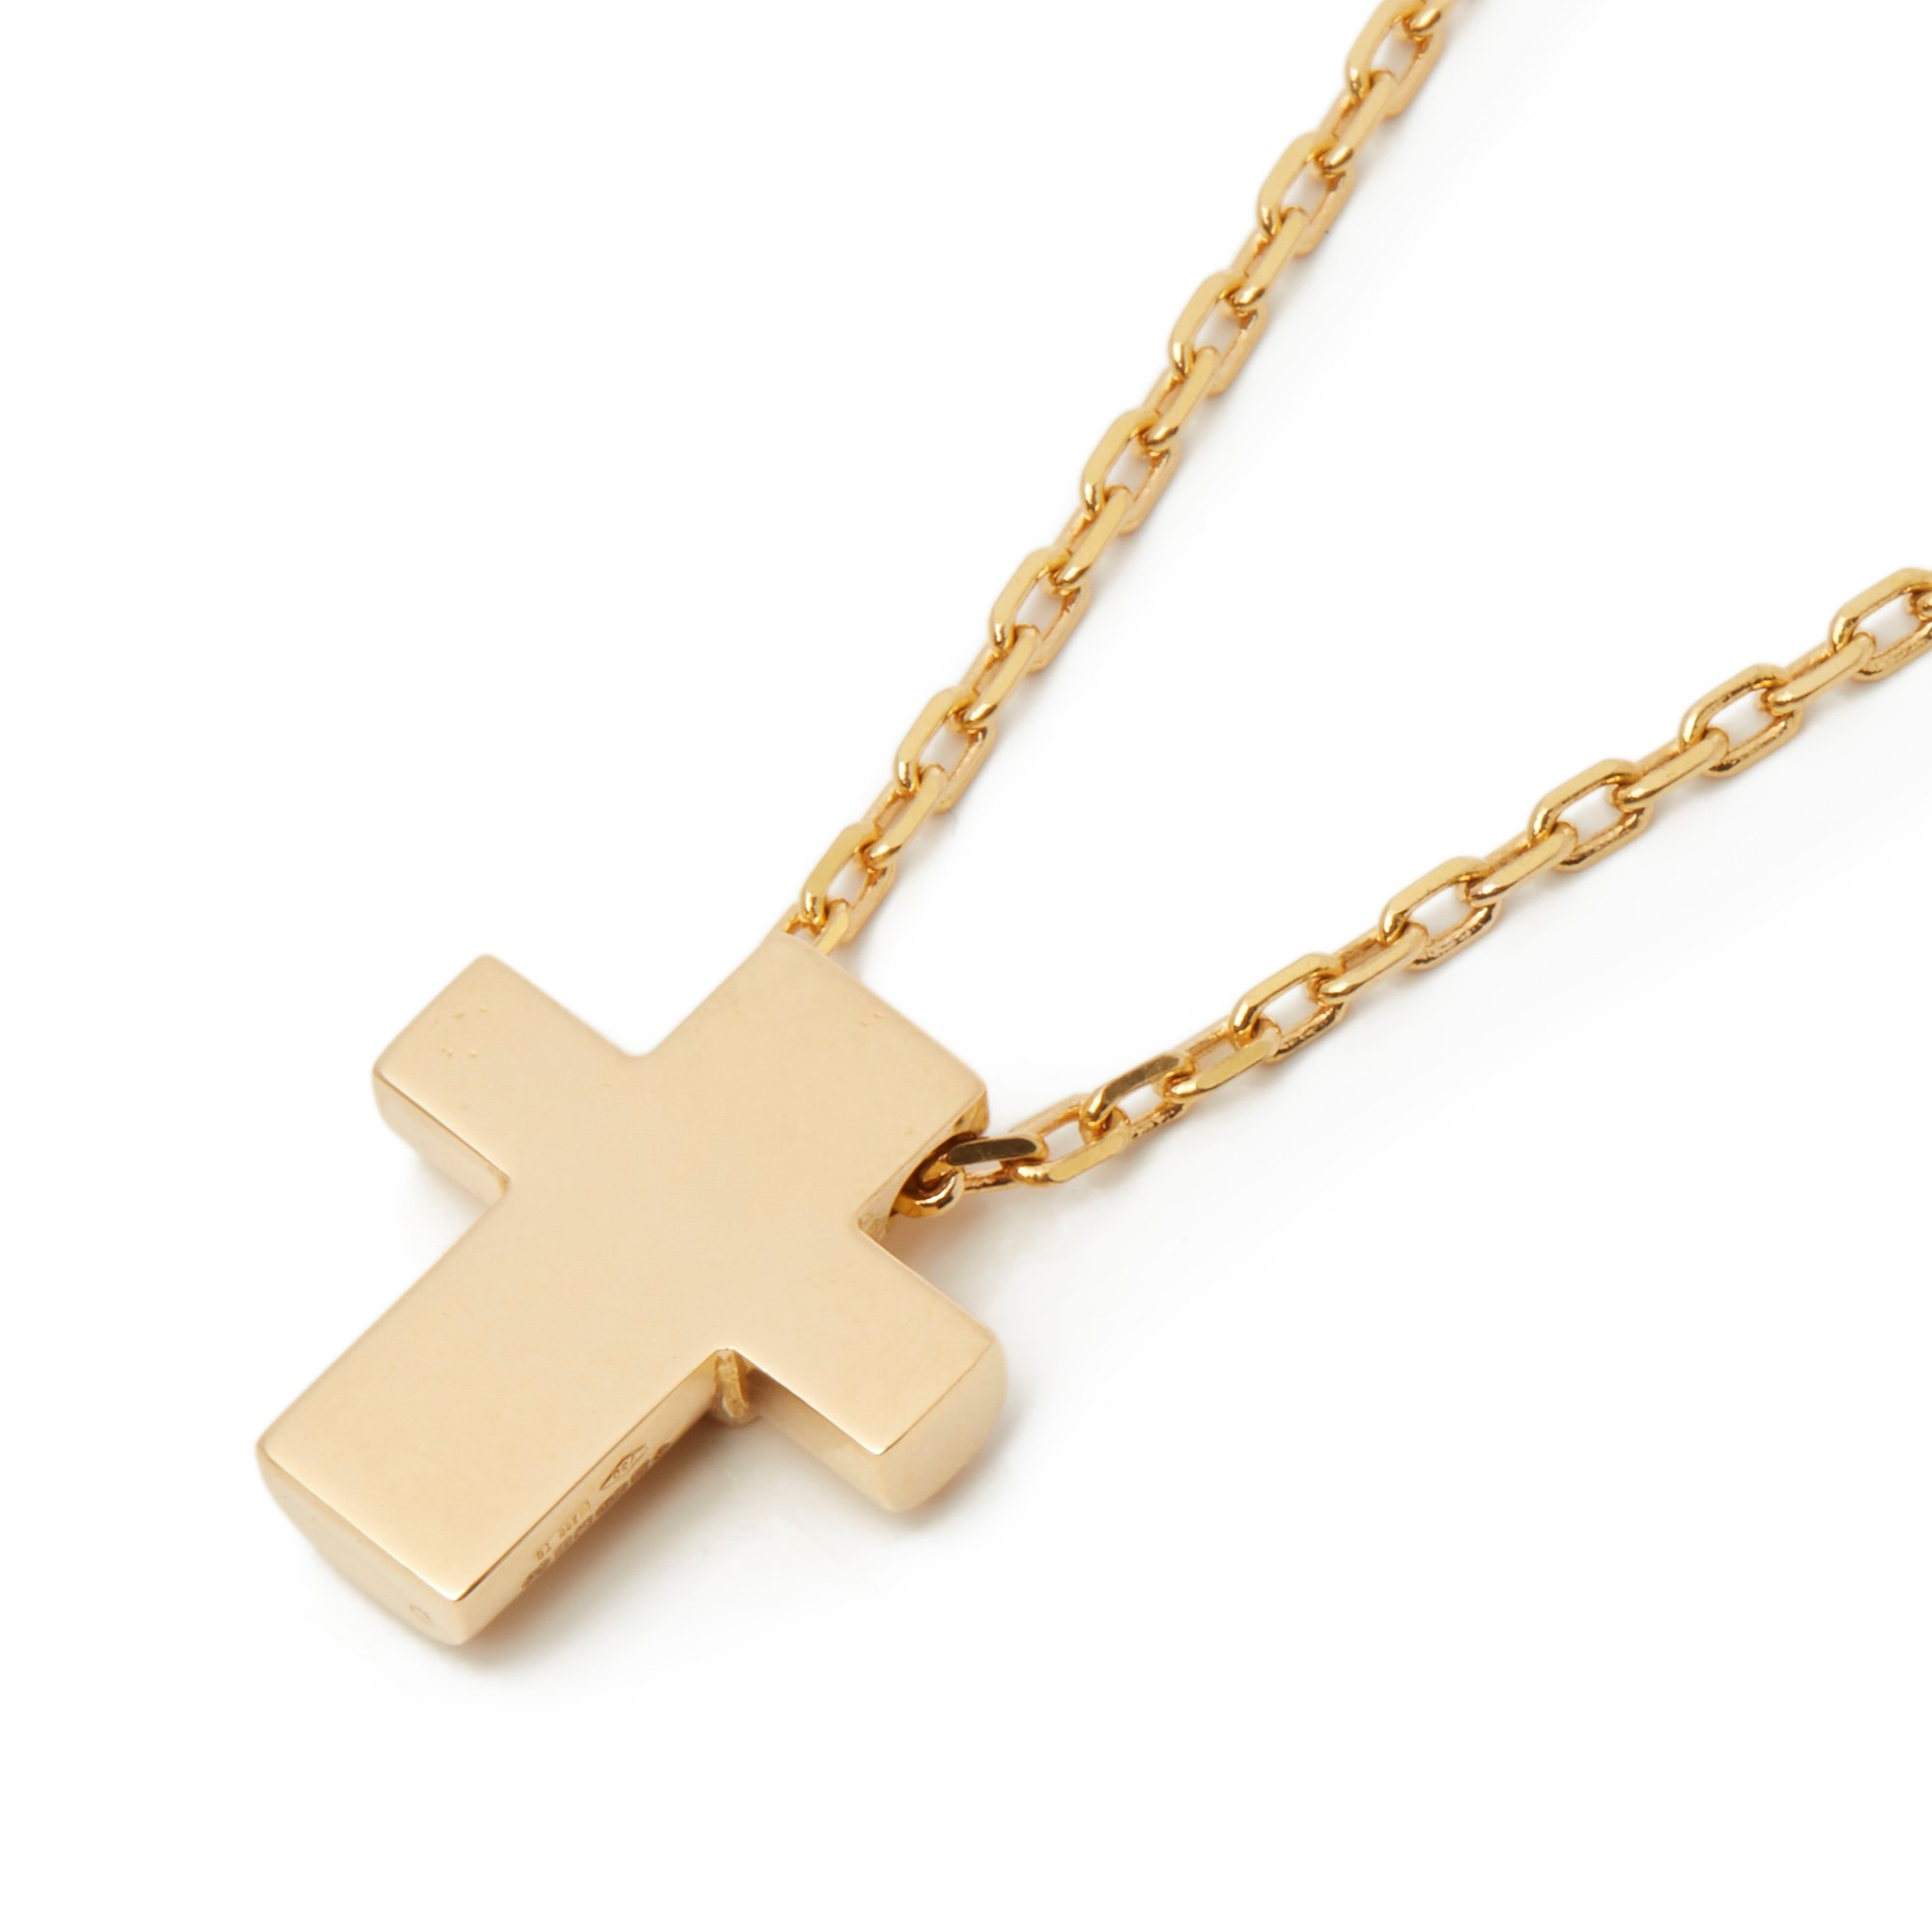 Asprey 18k Yellow Gold Cross Pendant Necklace